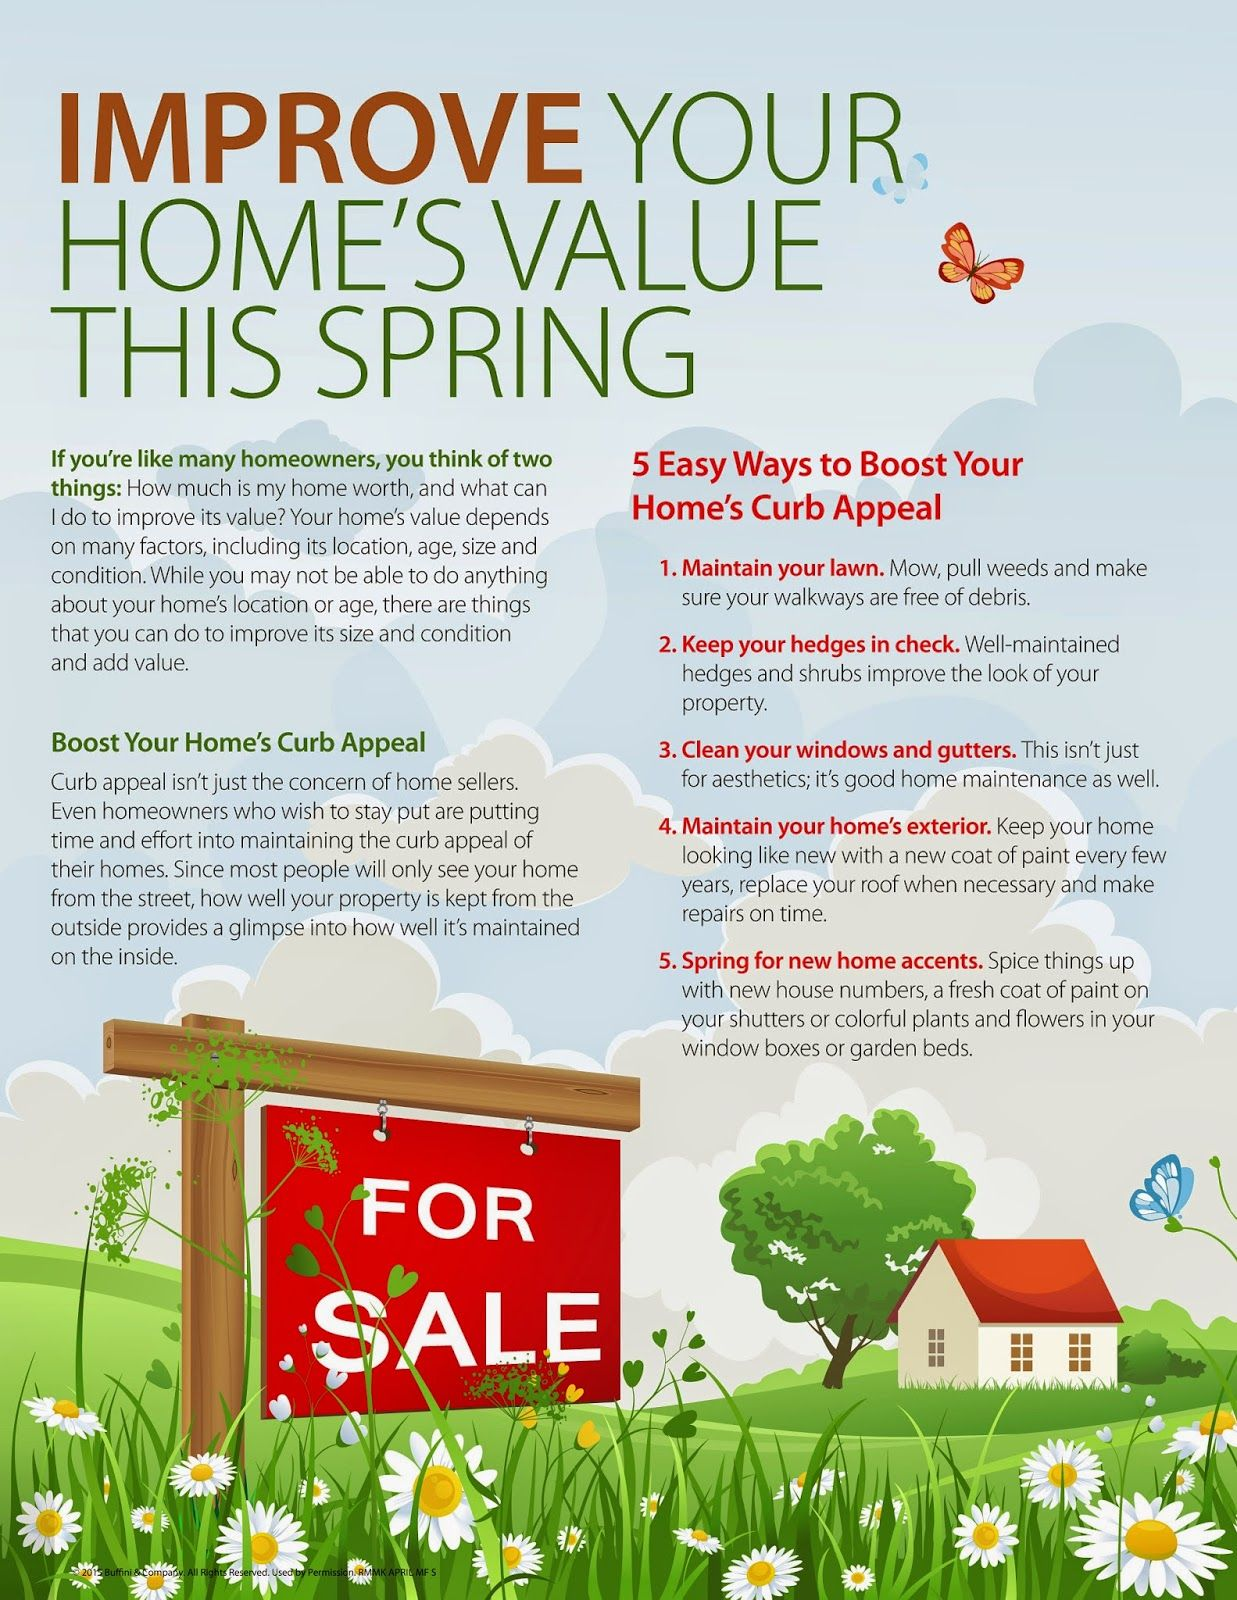 Nina Bhanot S Real Estate Blog Improve Your Home S Value This